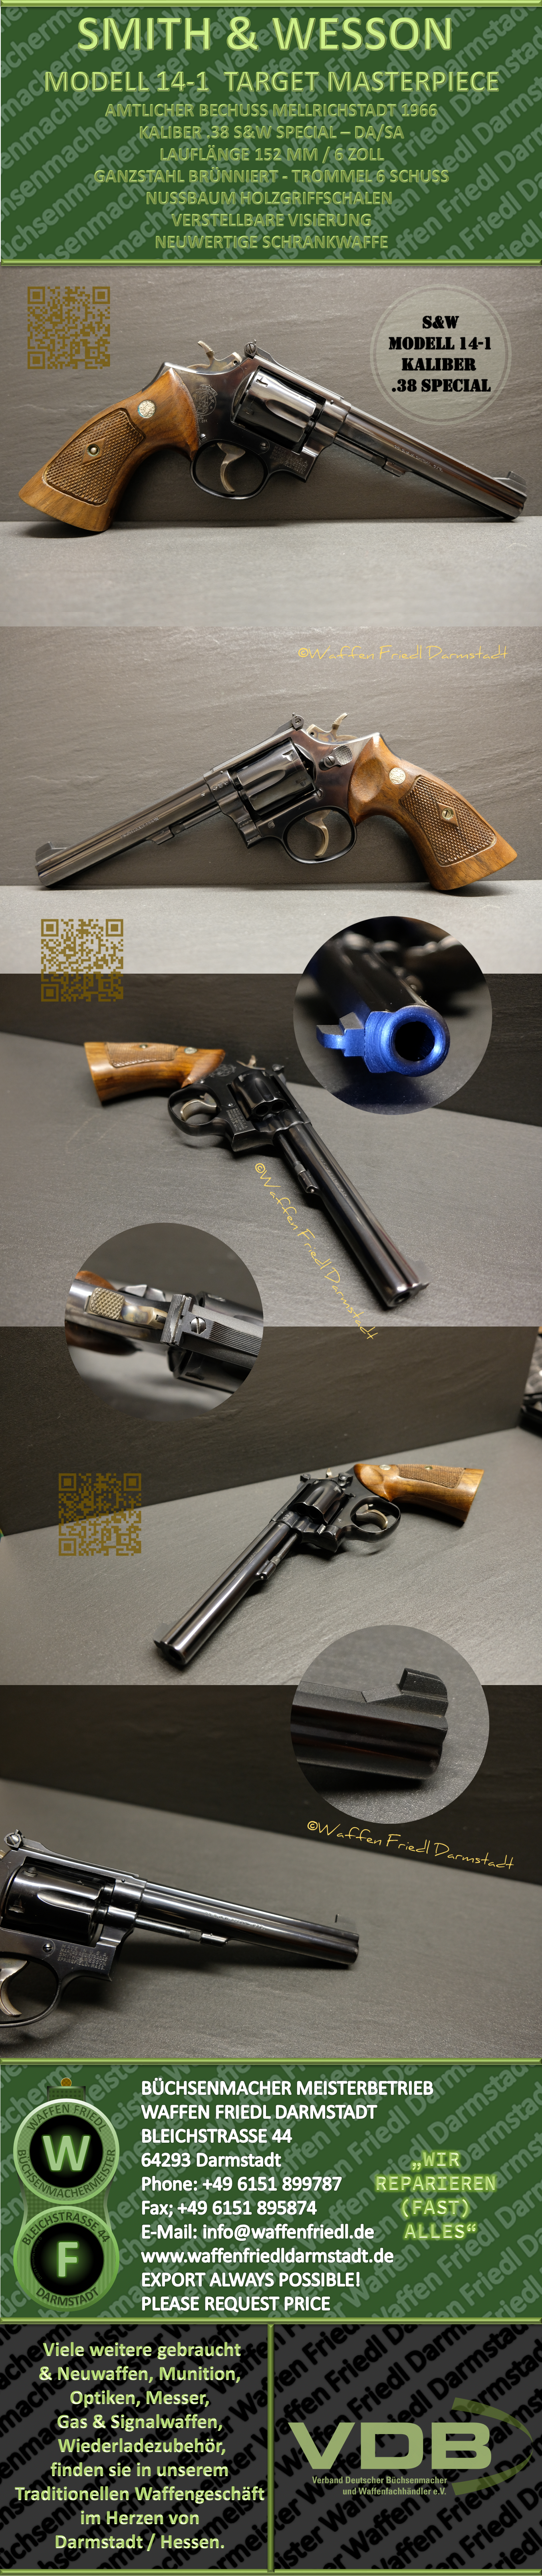 SMITH & WESSON TARGET MASTERPIECE - 6 ZOLL LAUF - KALIBER .38 SPECIAL